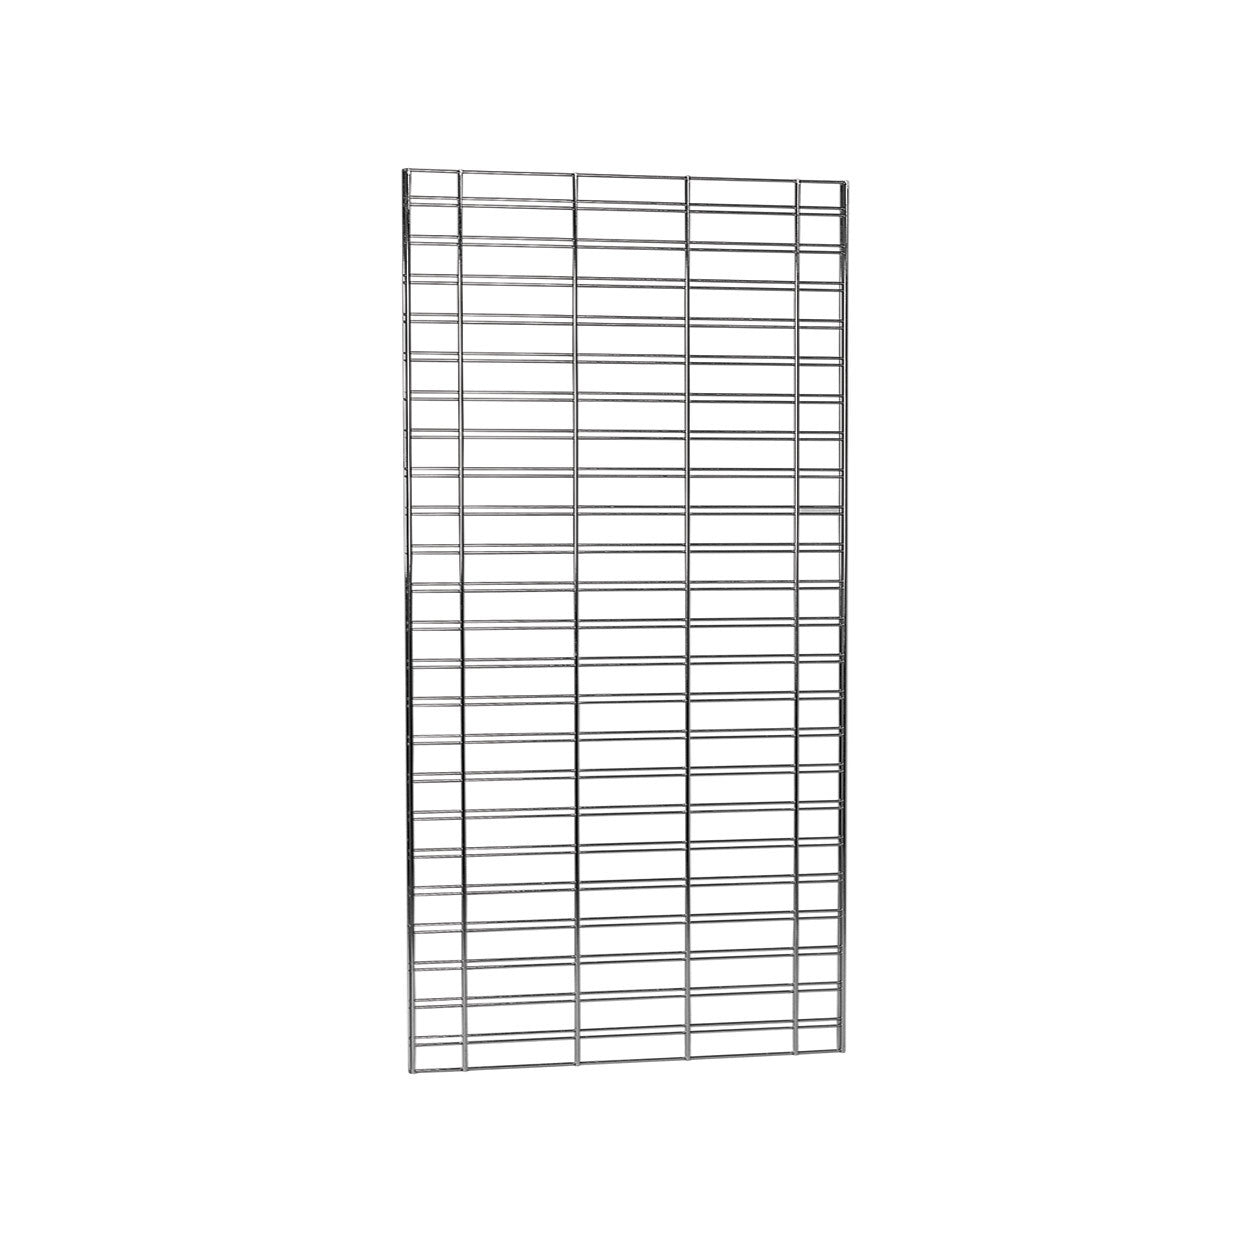 Slatwall mesh panel small  1200 H x 600 W x 18 mm D S1500CH